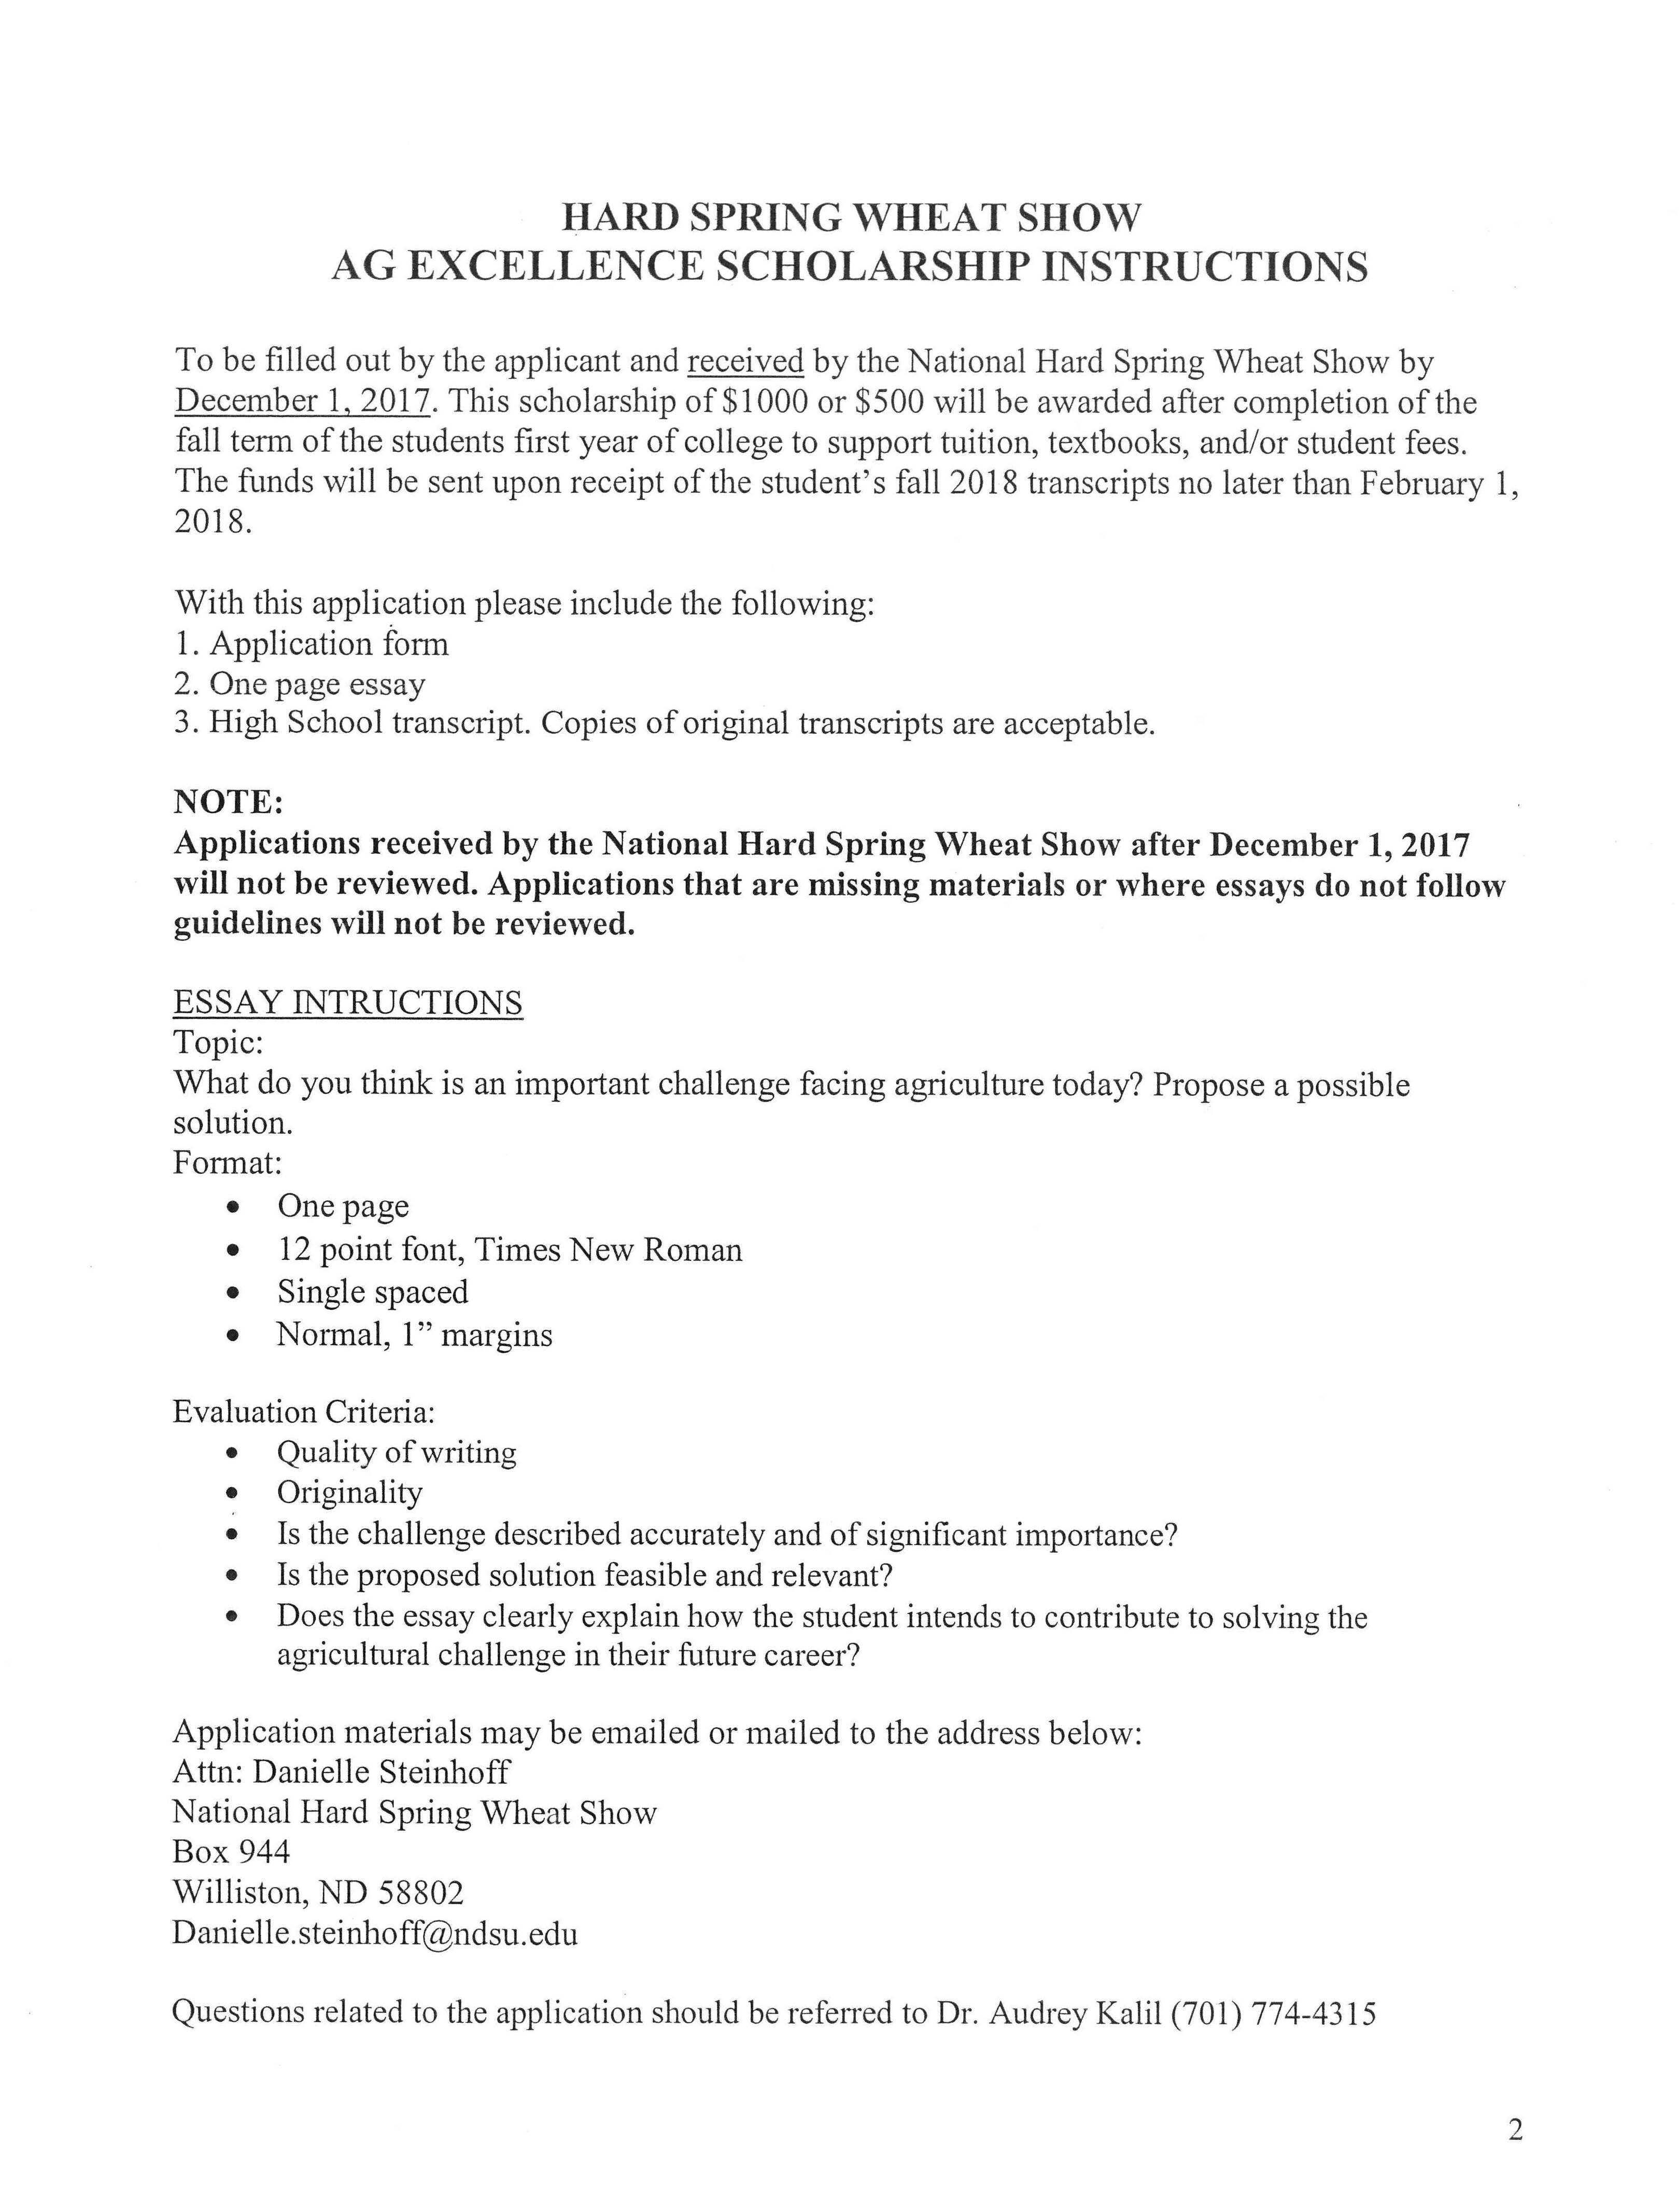 004 Essay Example Page 2 Scholarships Wonderful 2017 No College Canada Full